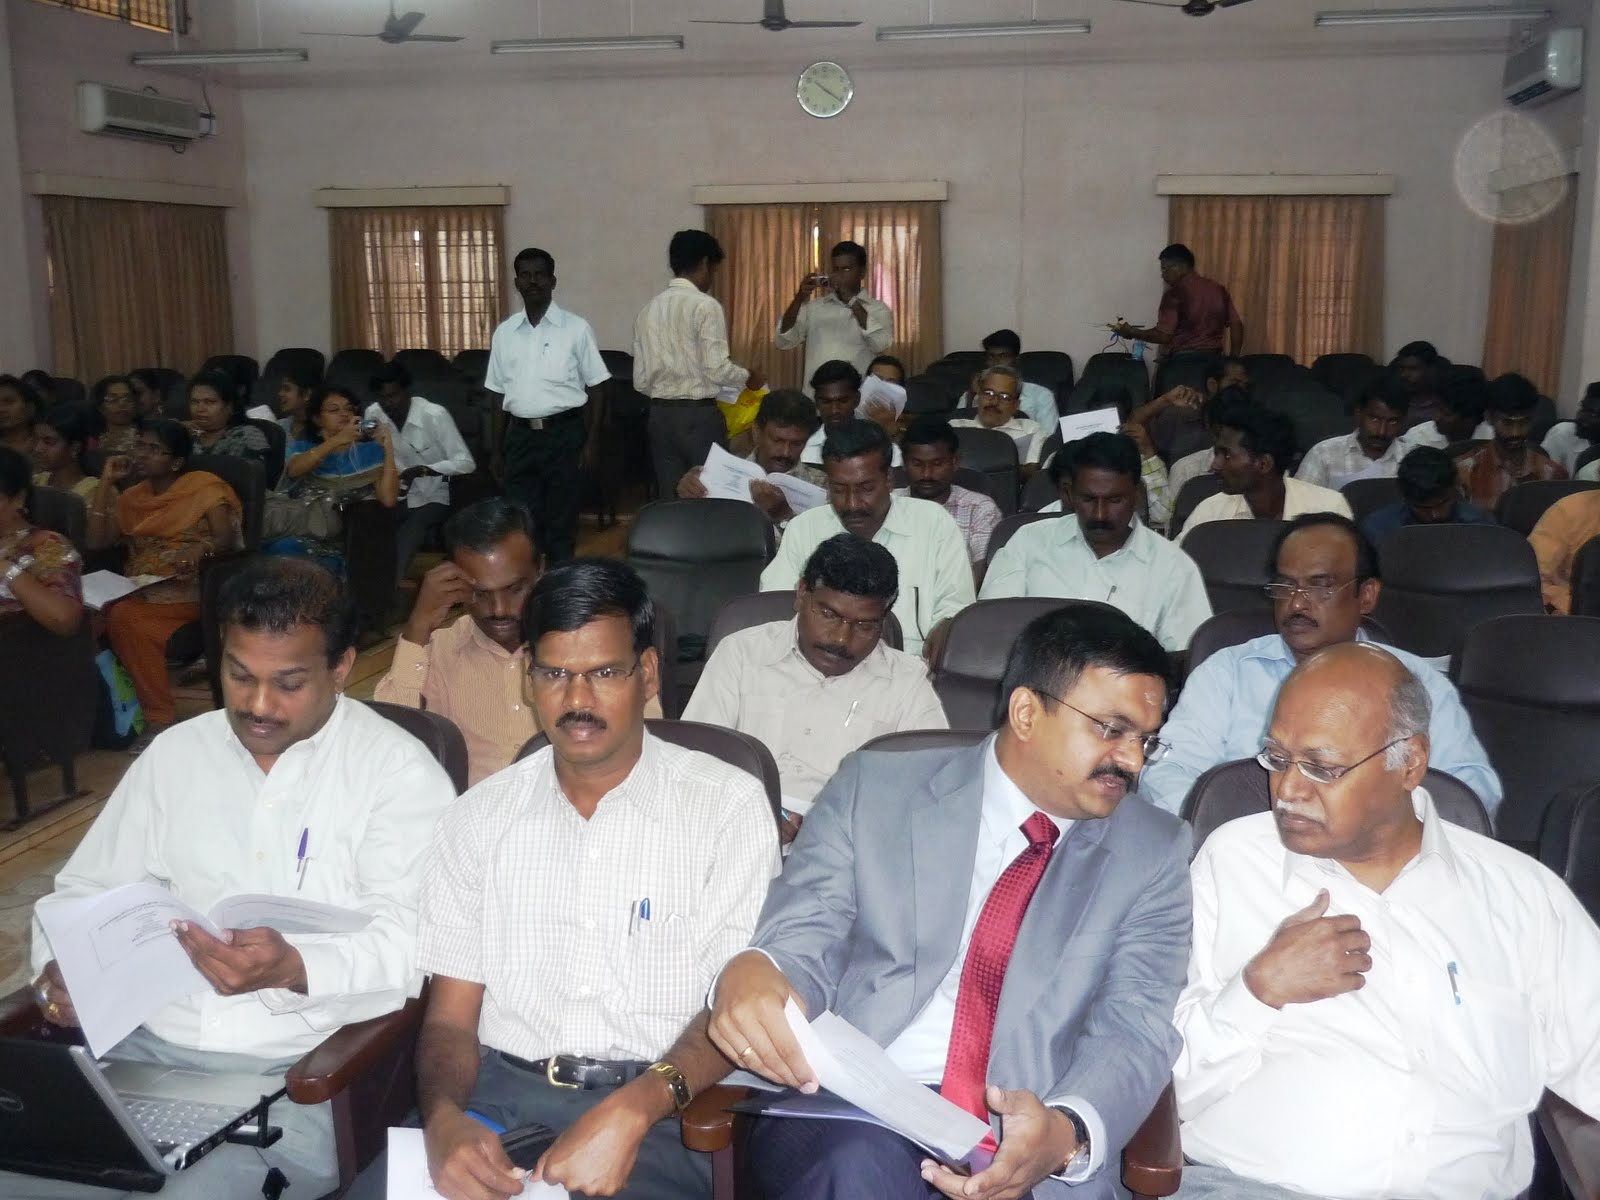 (Seated Front Row) Mr.Raman, Dr.M.Elangovan (Bharatidasan College for Women, Pondicherry), T.N.C.Venkata Rangan (Chair, INFITT), Mr.Ramakrishnan alias Ramki (Tamil Enthusiast & Avid Blogger)